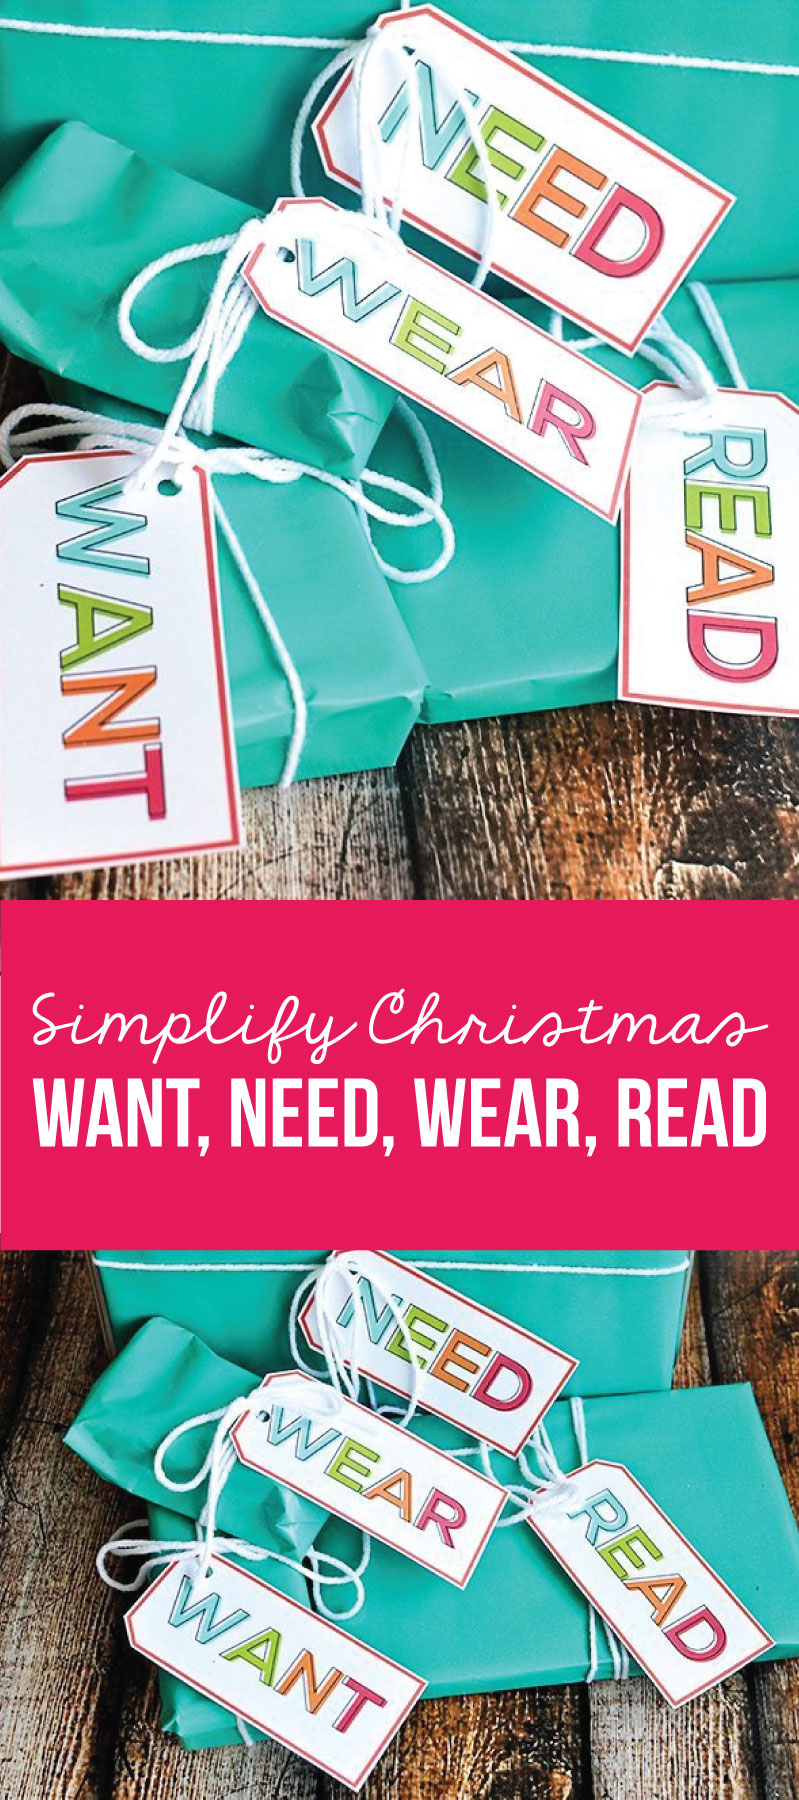 Christmas Gift Ideas - Want, Need, Wear, Read - How to simplify Christmas www.thirtyhandmadedays.com